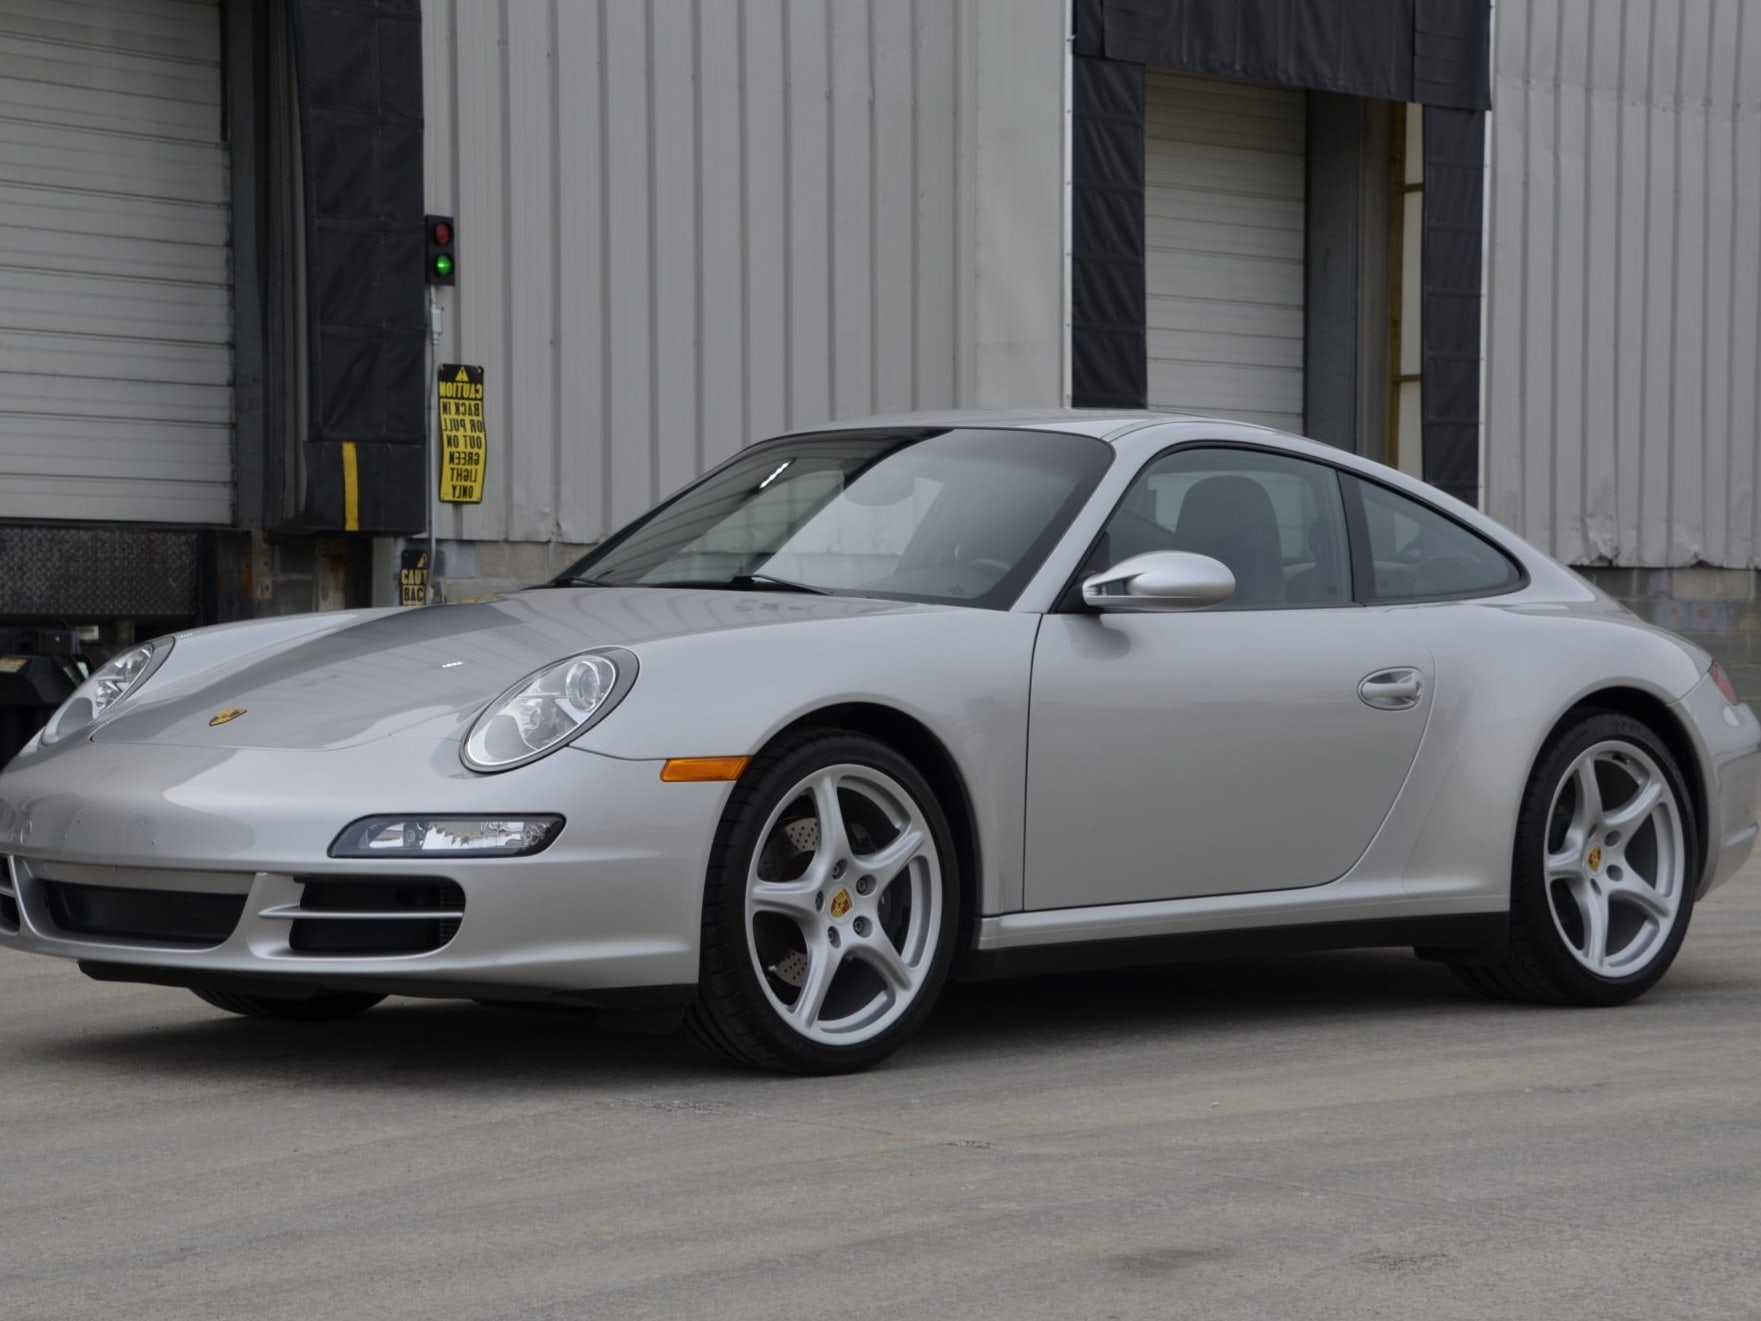 2007 Porsche 911 Carrera 4 Coupe 6-Speed